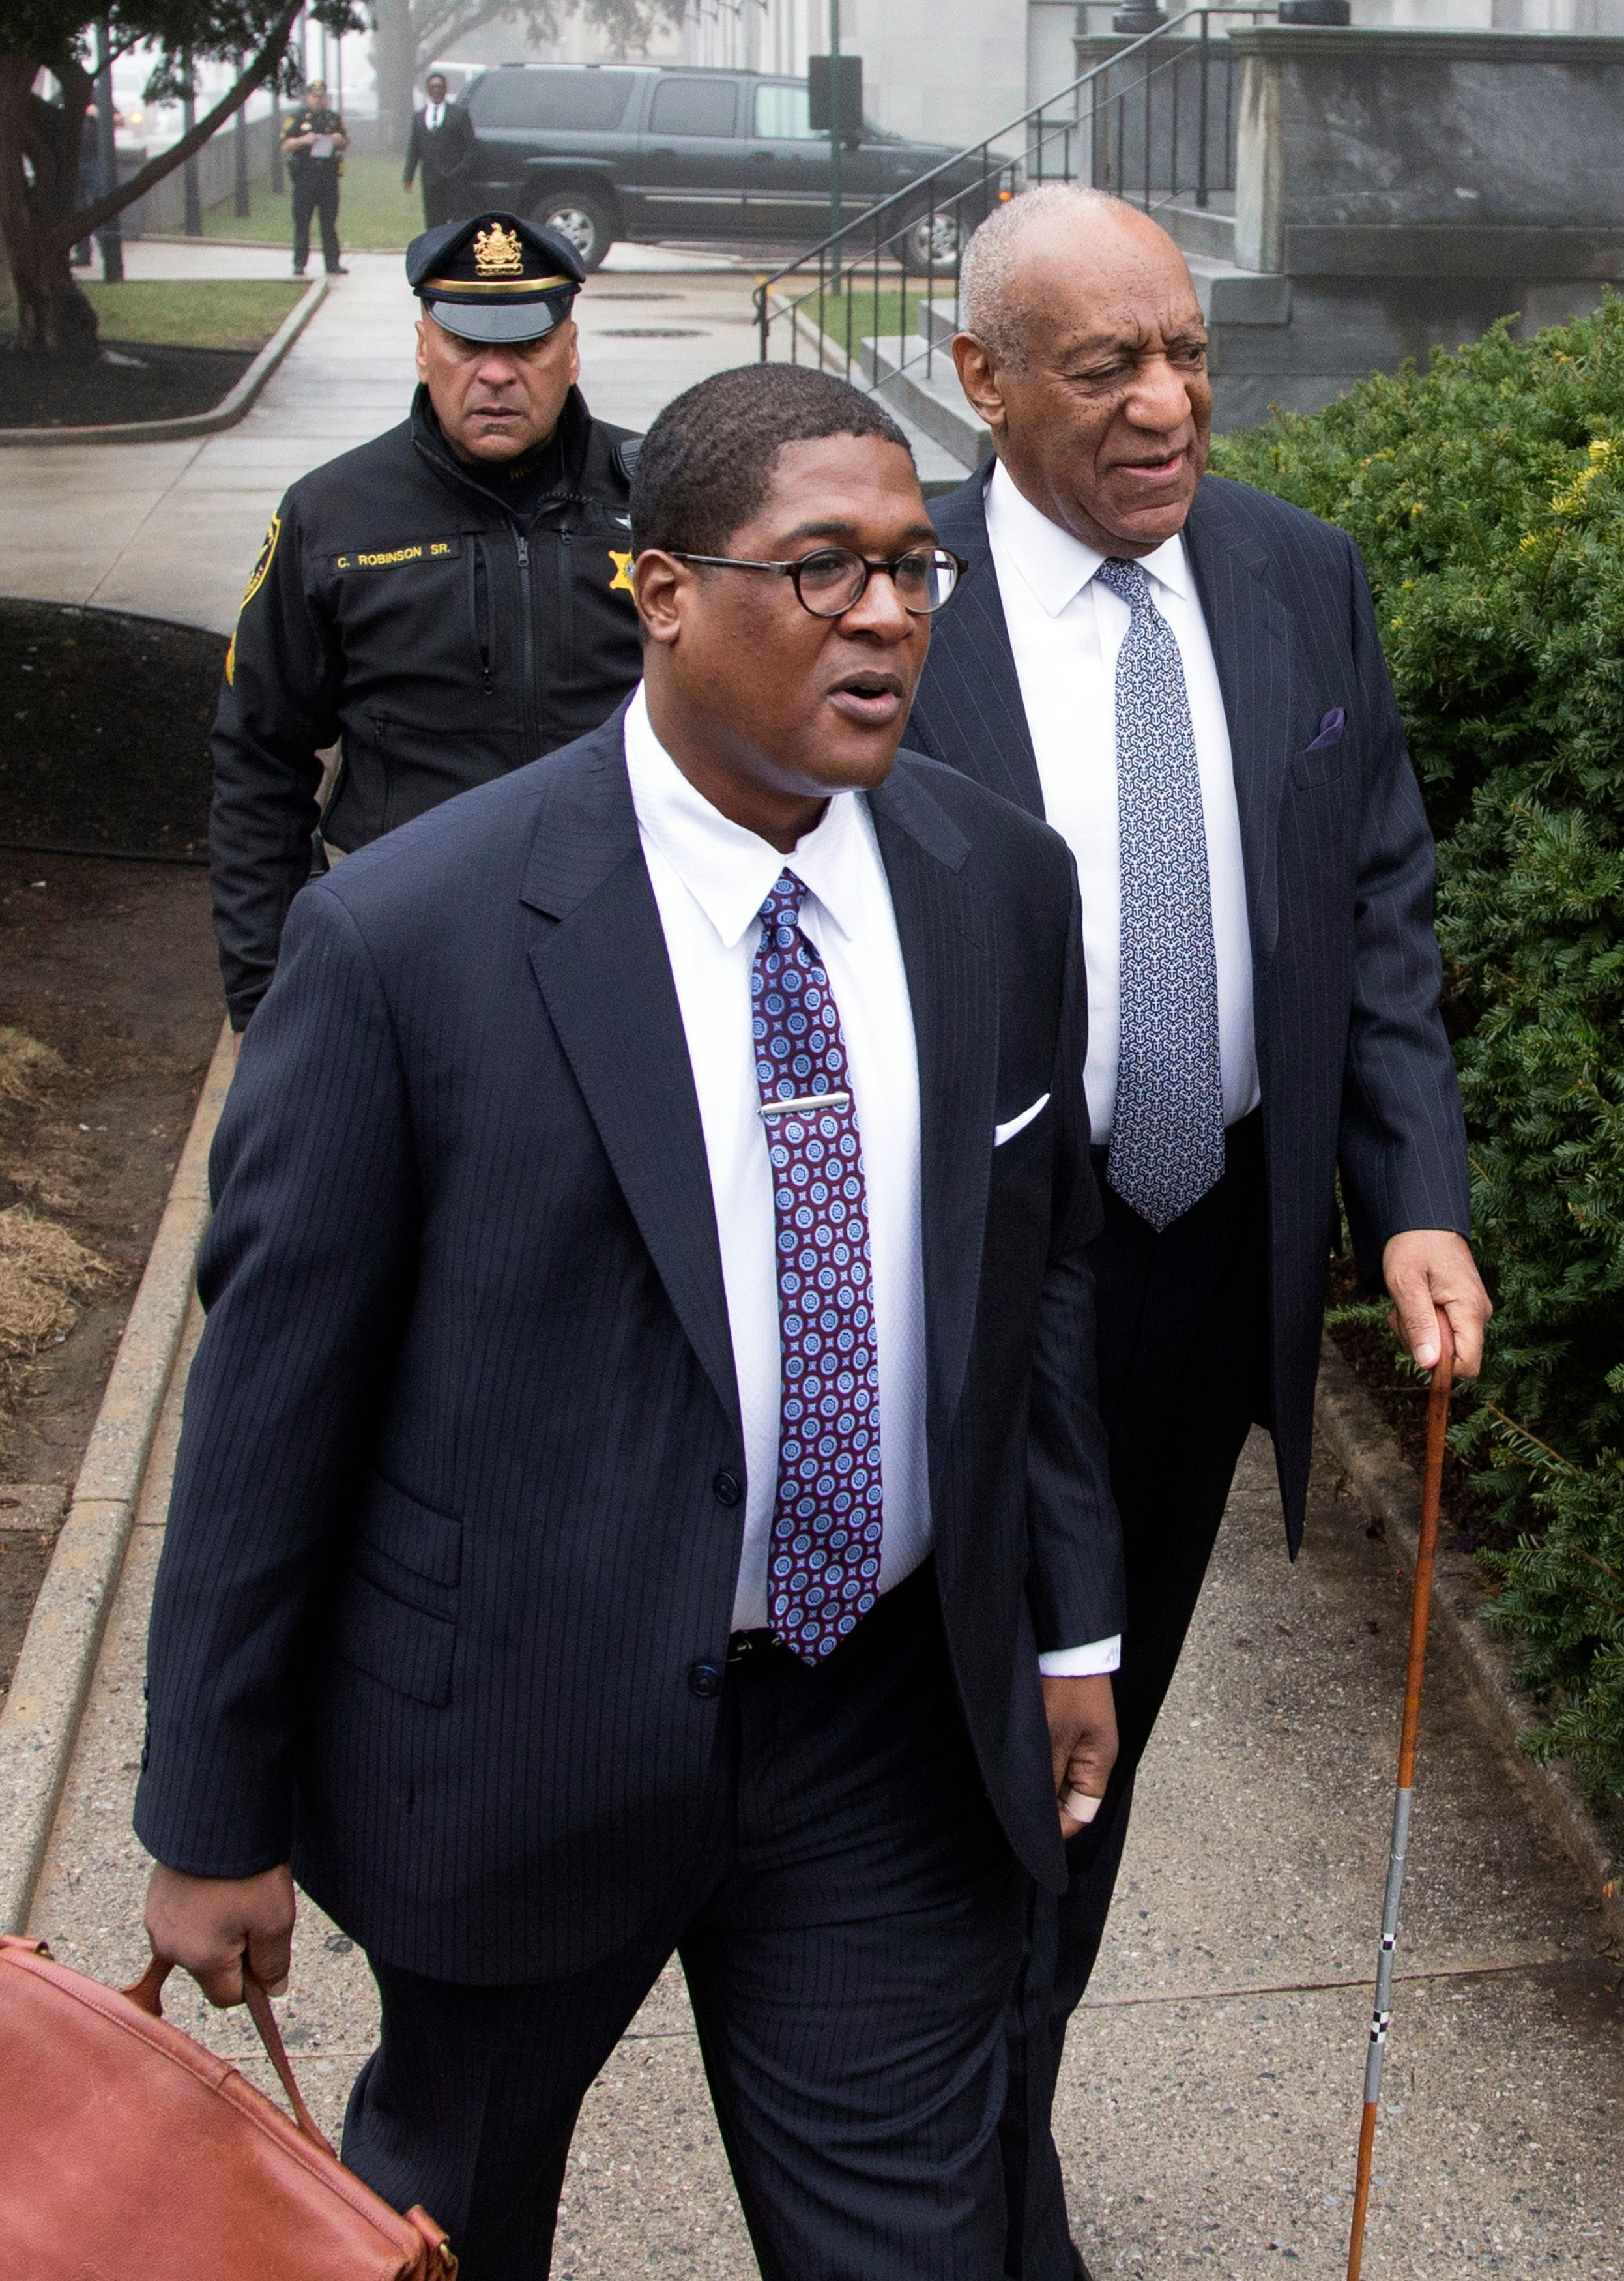 Bill Cosby retrial: Jury selection resumes after defense calls process discriminatory